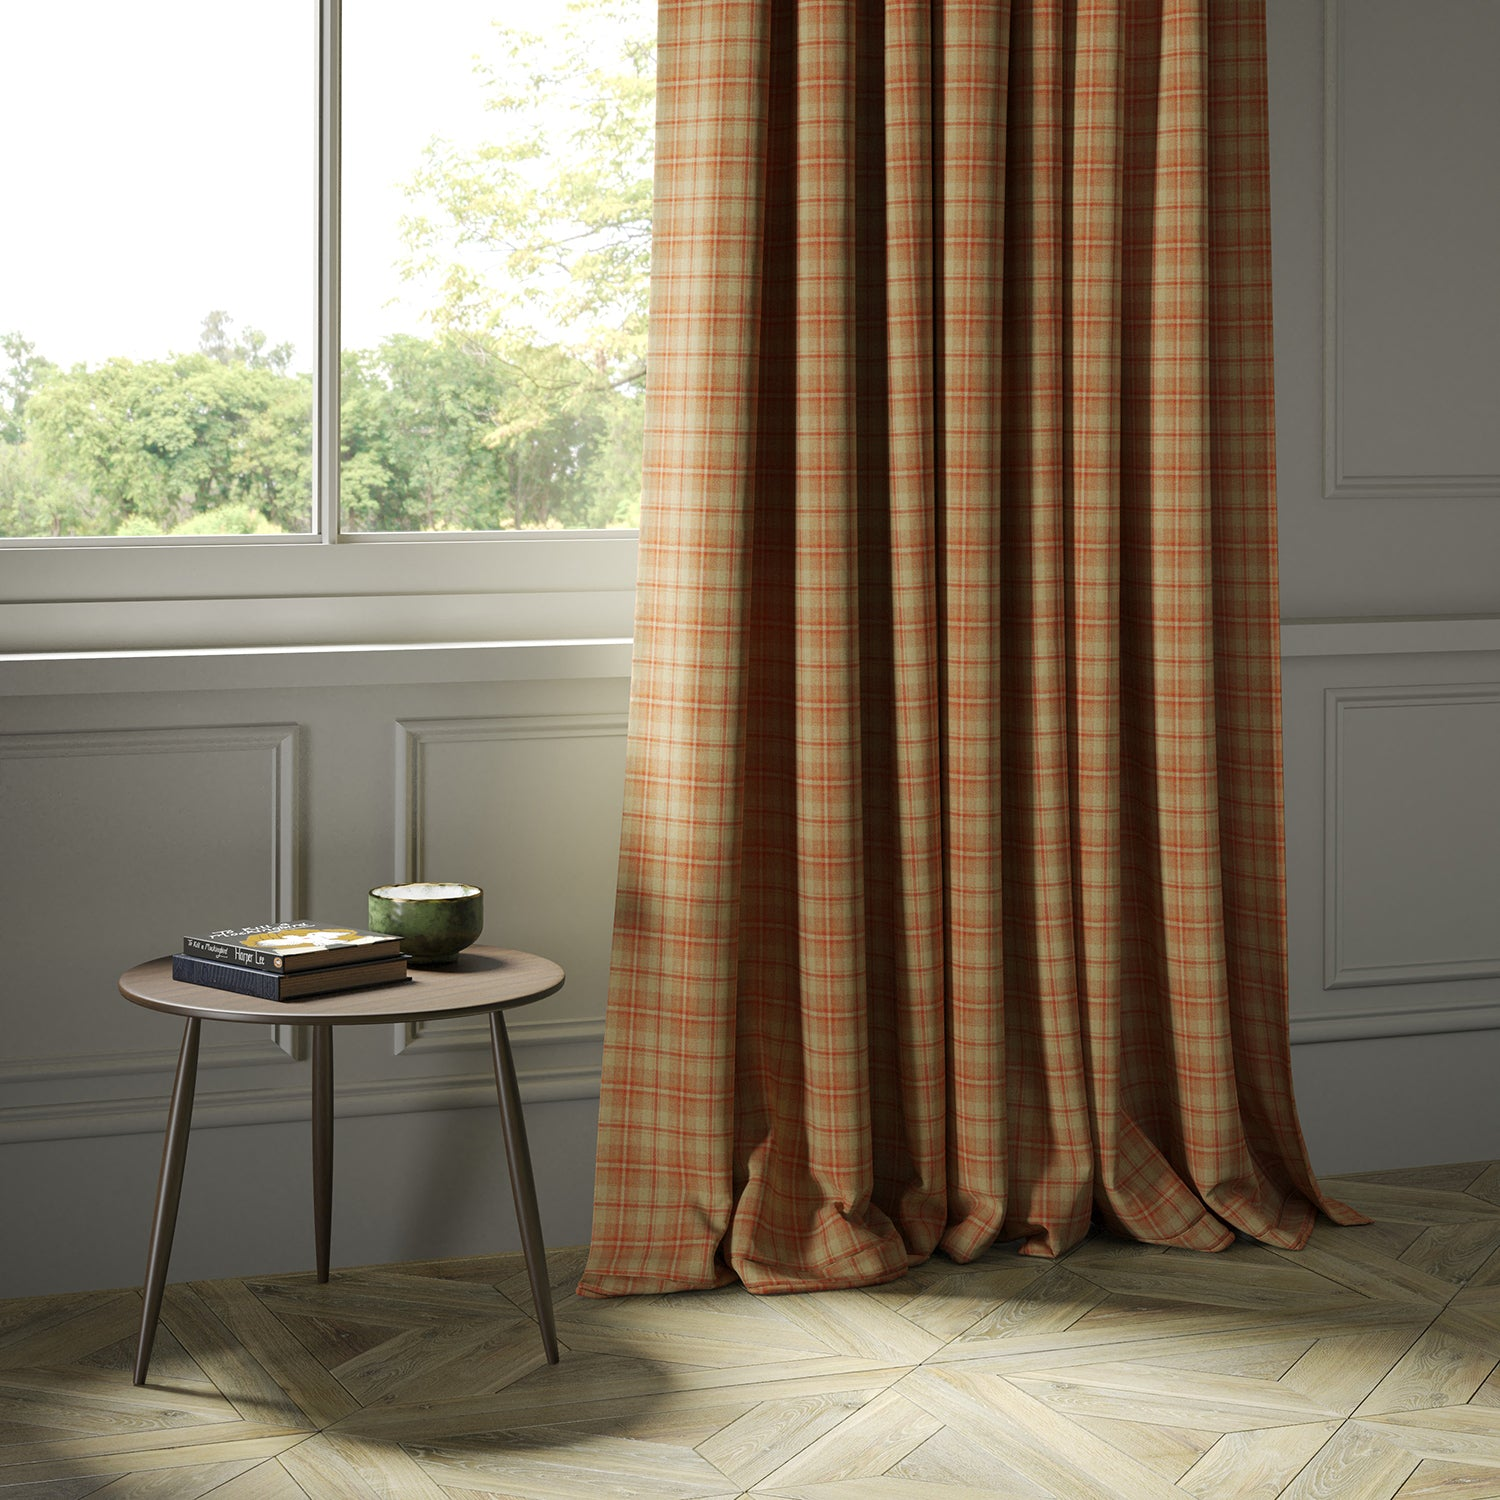 Curtains in a luxury Scottish red and neutral wool tartan fabric